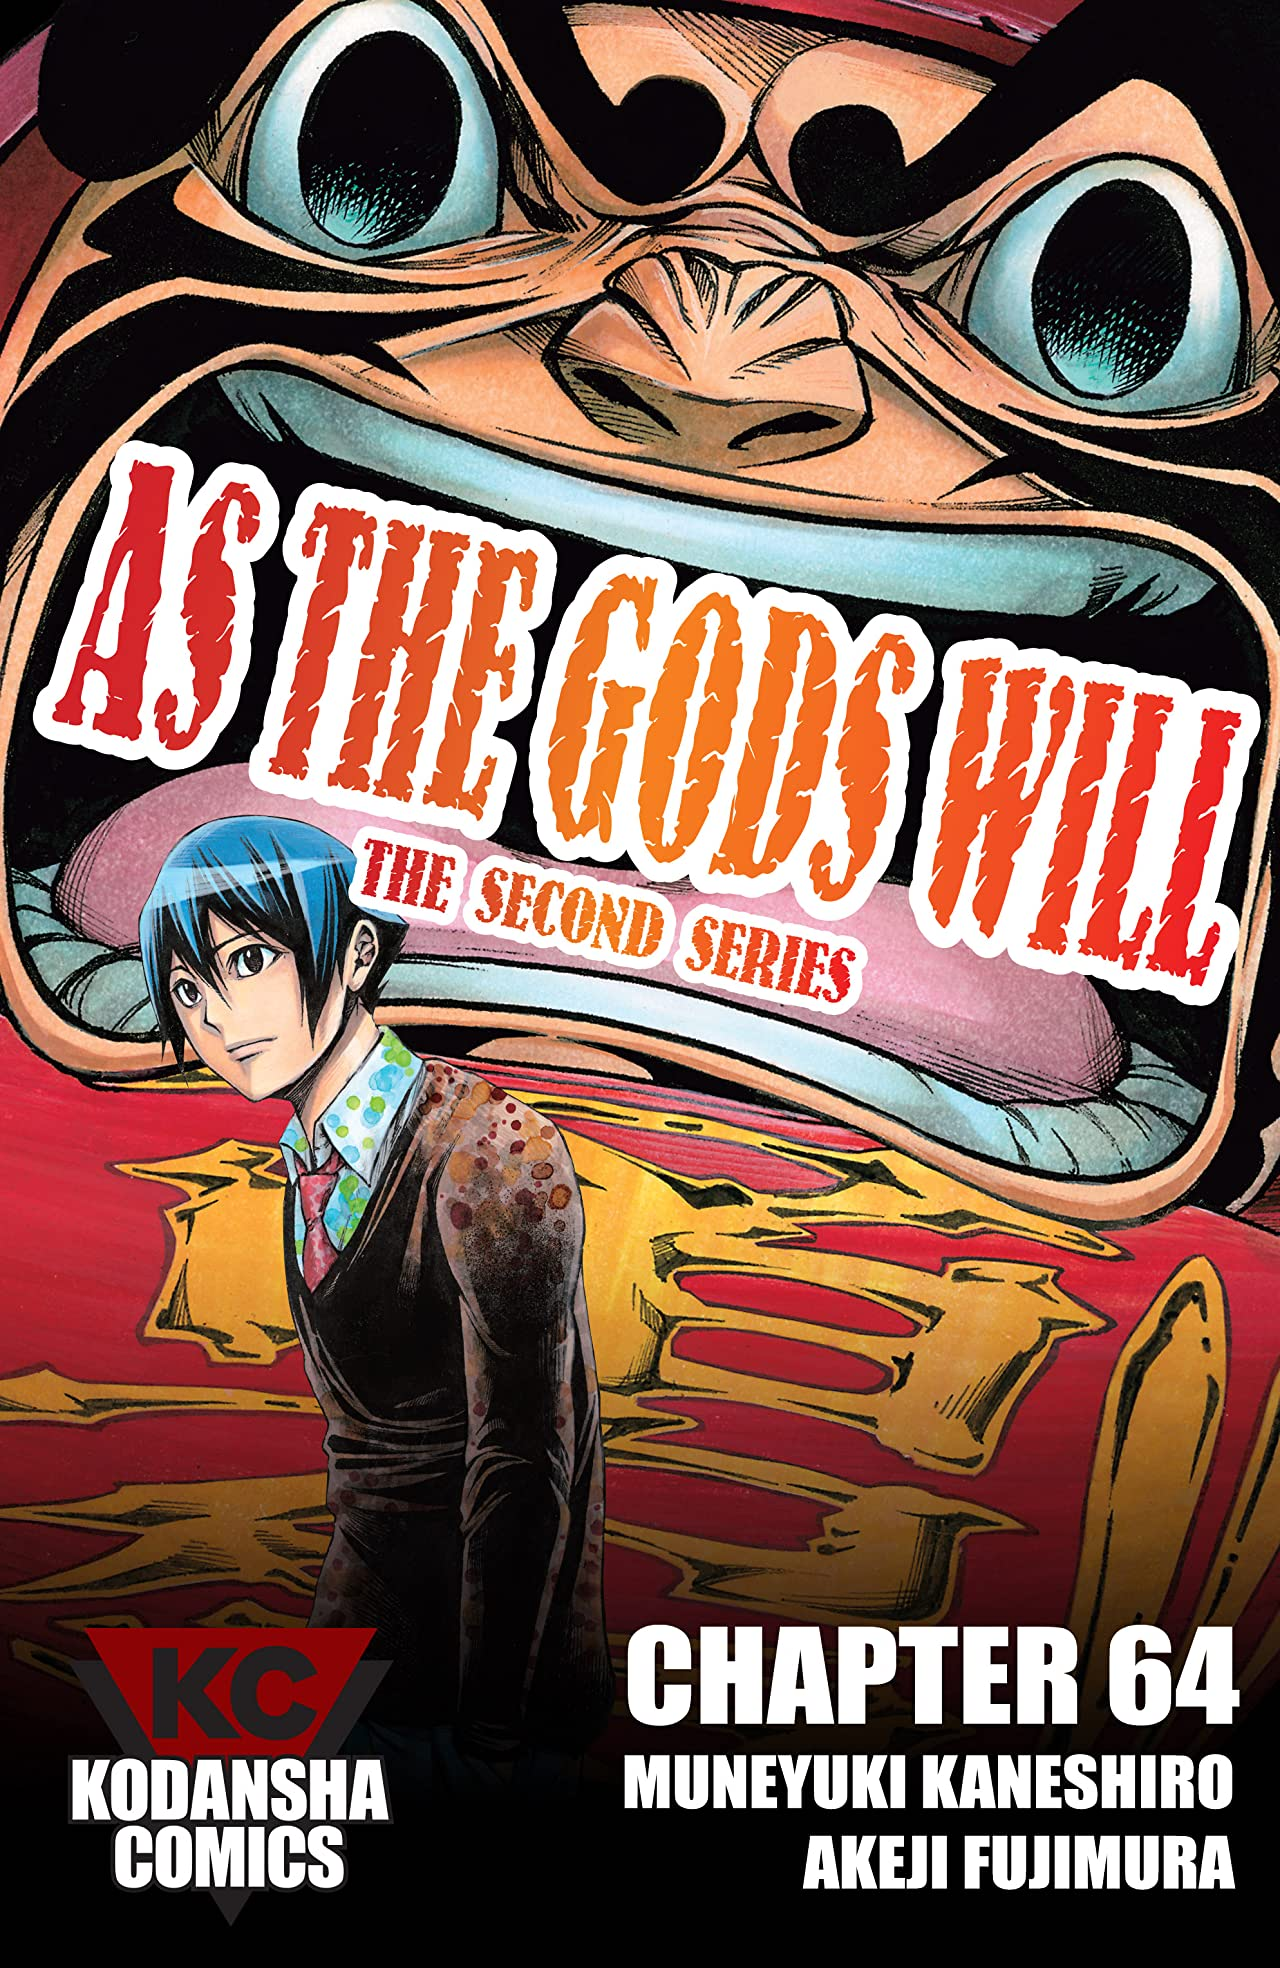 As The Gods Will: The Second Series #64